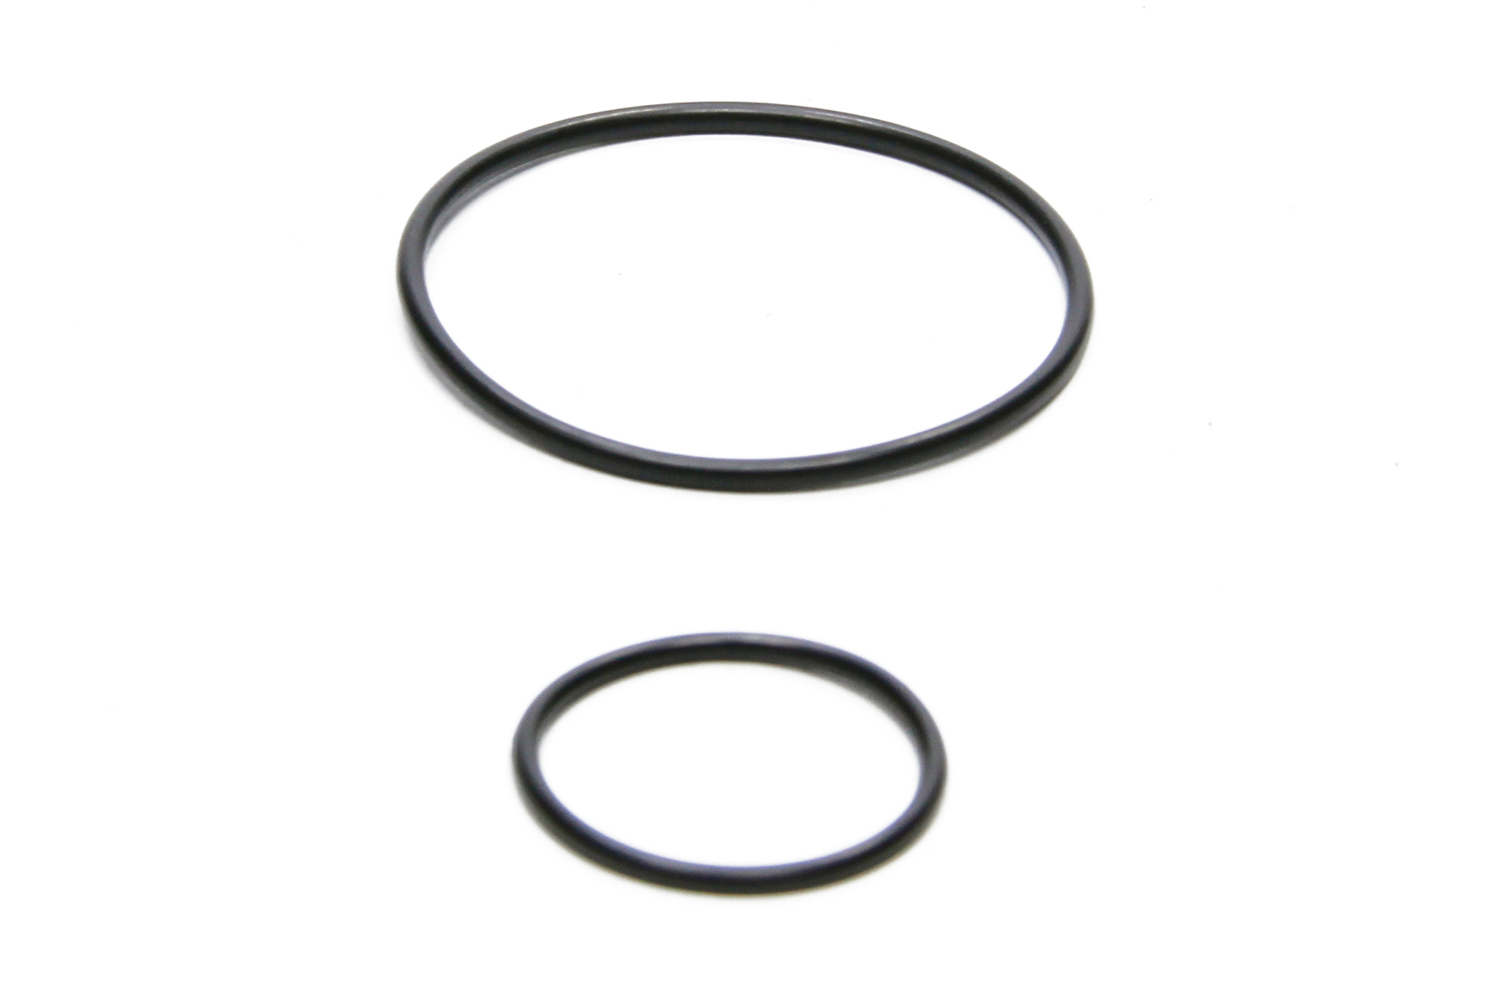 King Racing Products 4346 O-Ring, 12 AN, Rubber, King Racing Products Fuel Filter, Kit